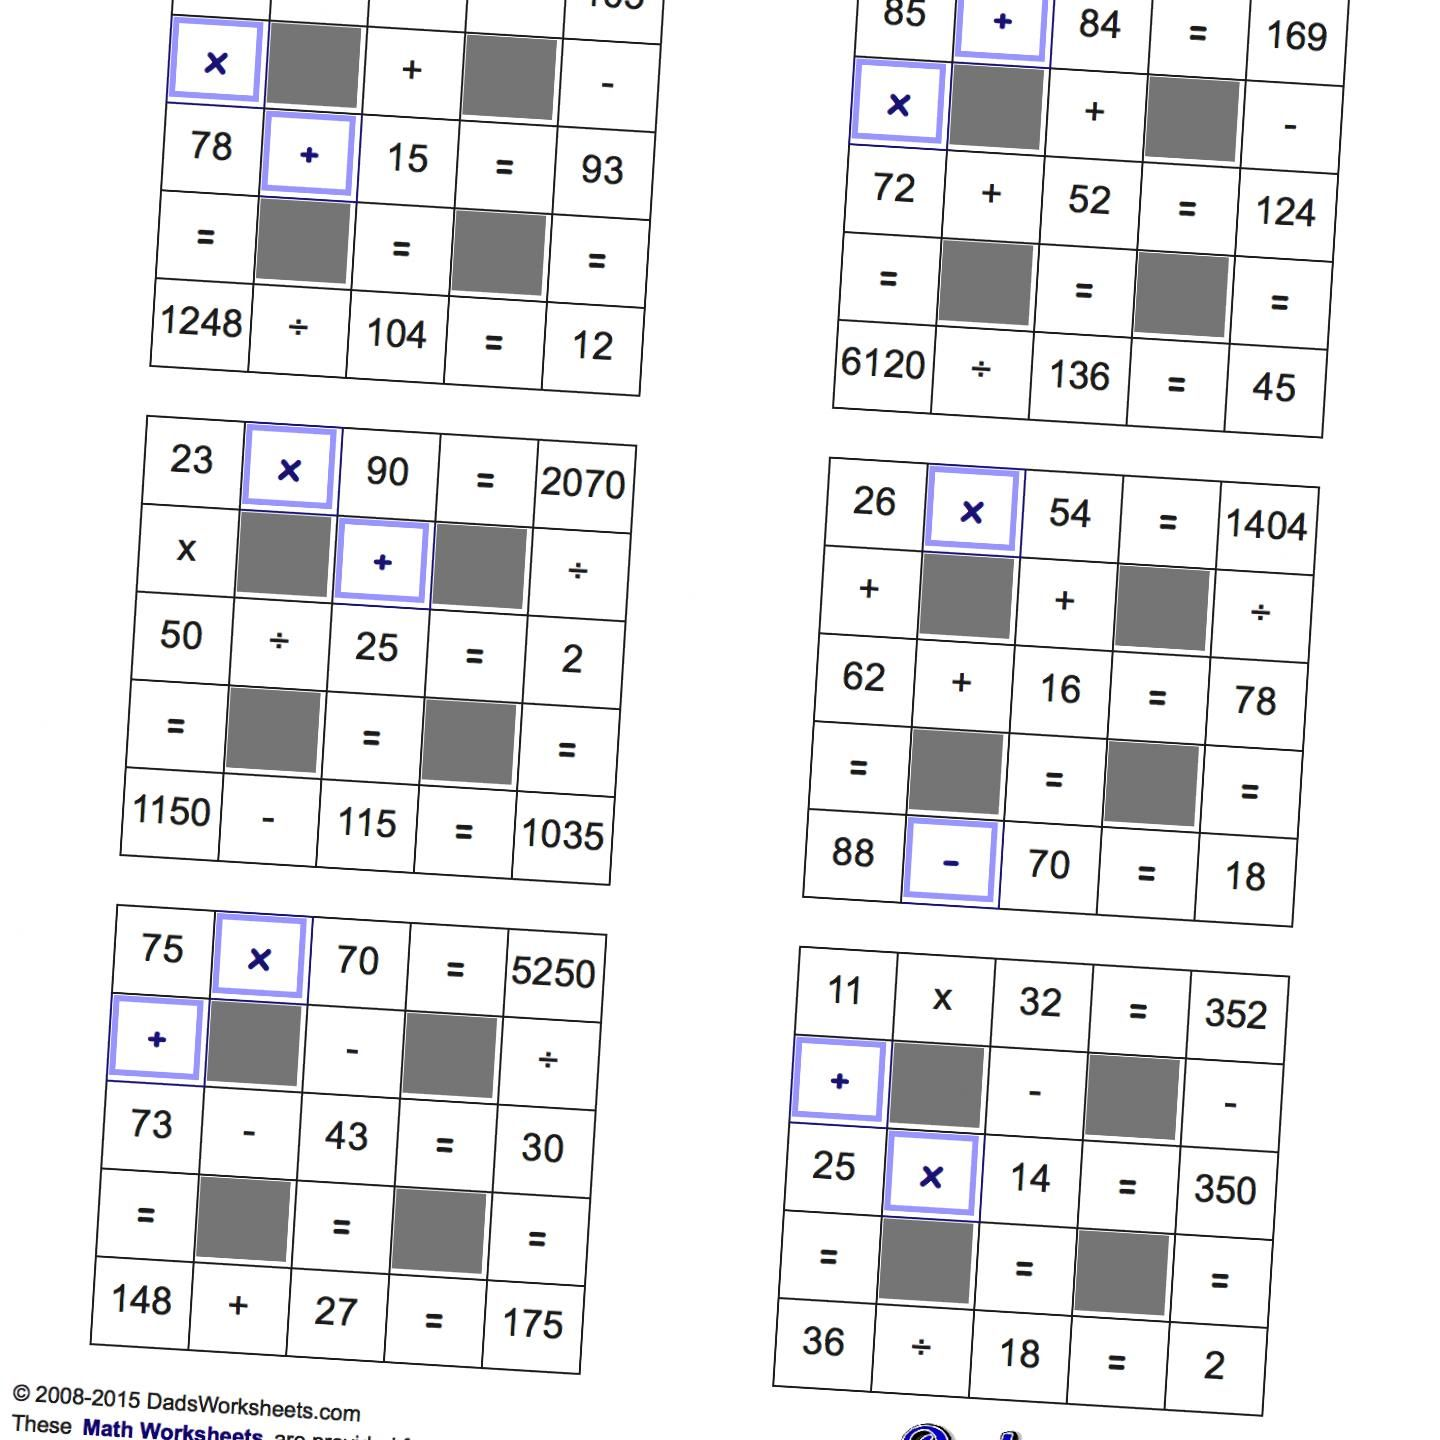 Math Worksheets All Operations Grid Puzzles with Missing Values – Fractions Puzzle Worksheet